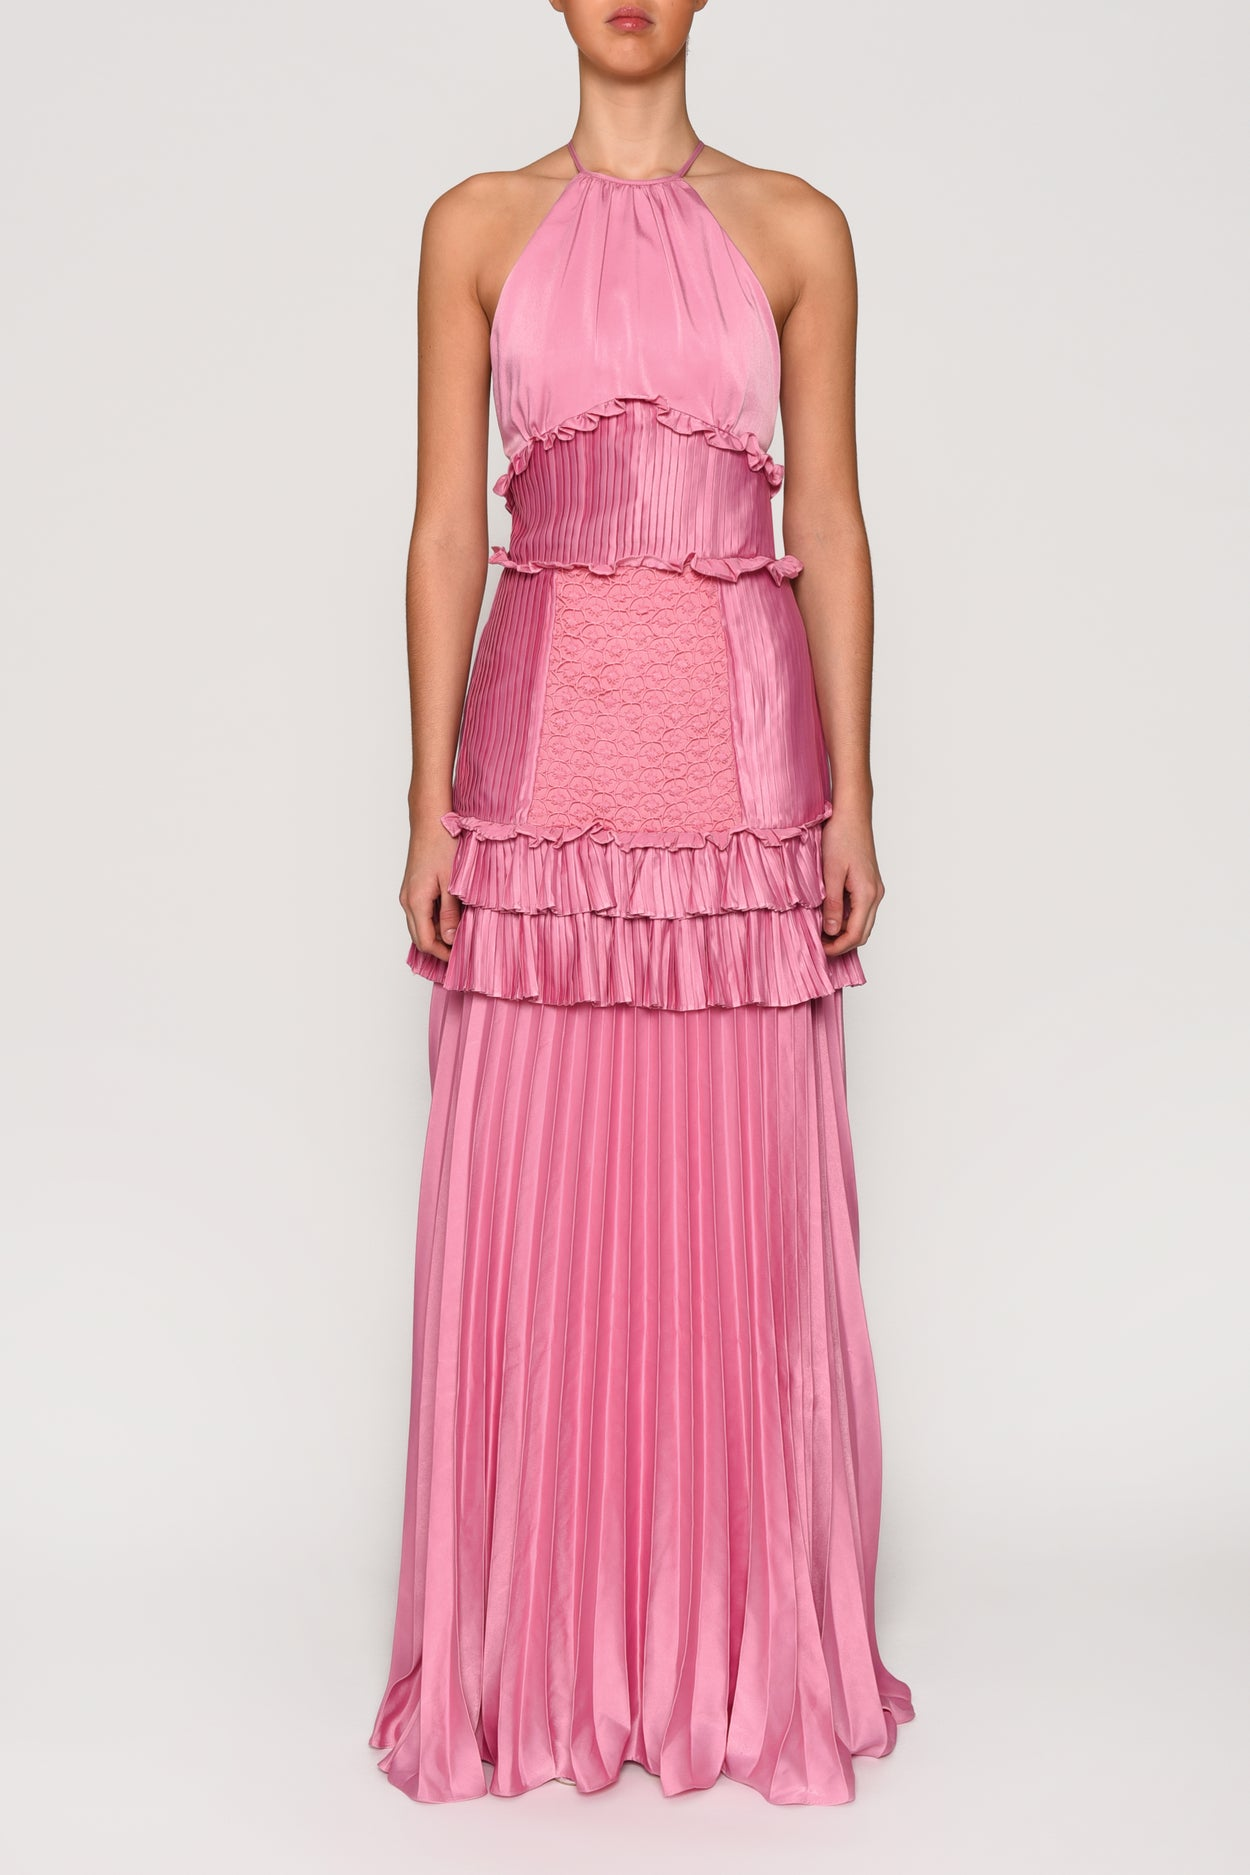 Orchid Pink Satin Halterneck Gown